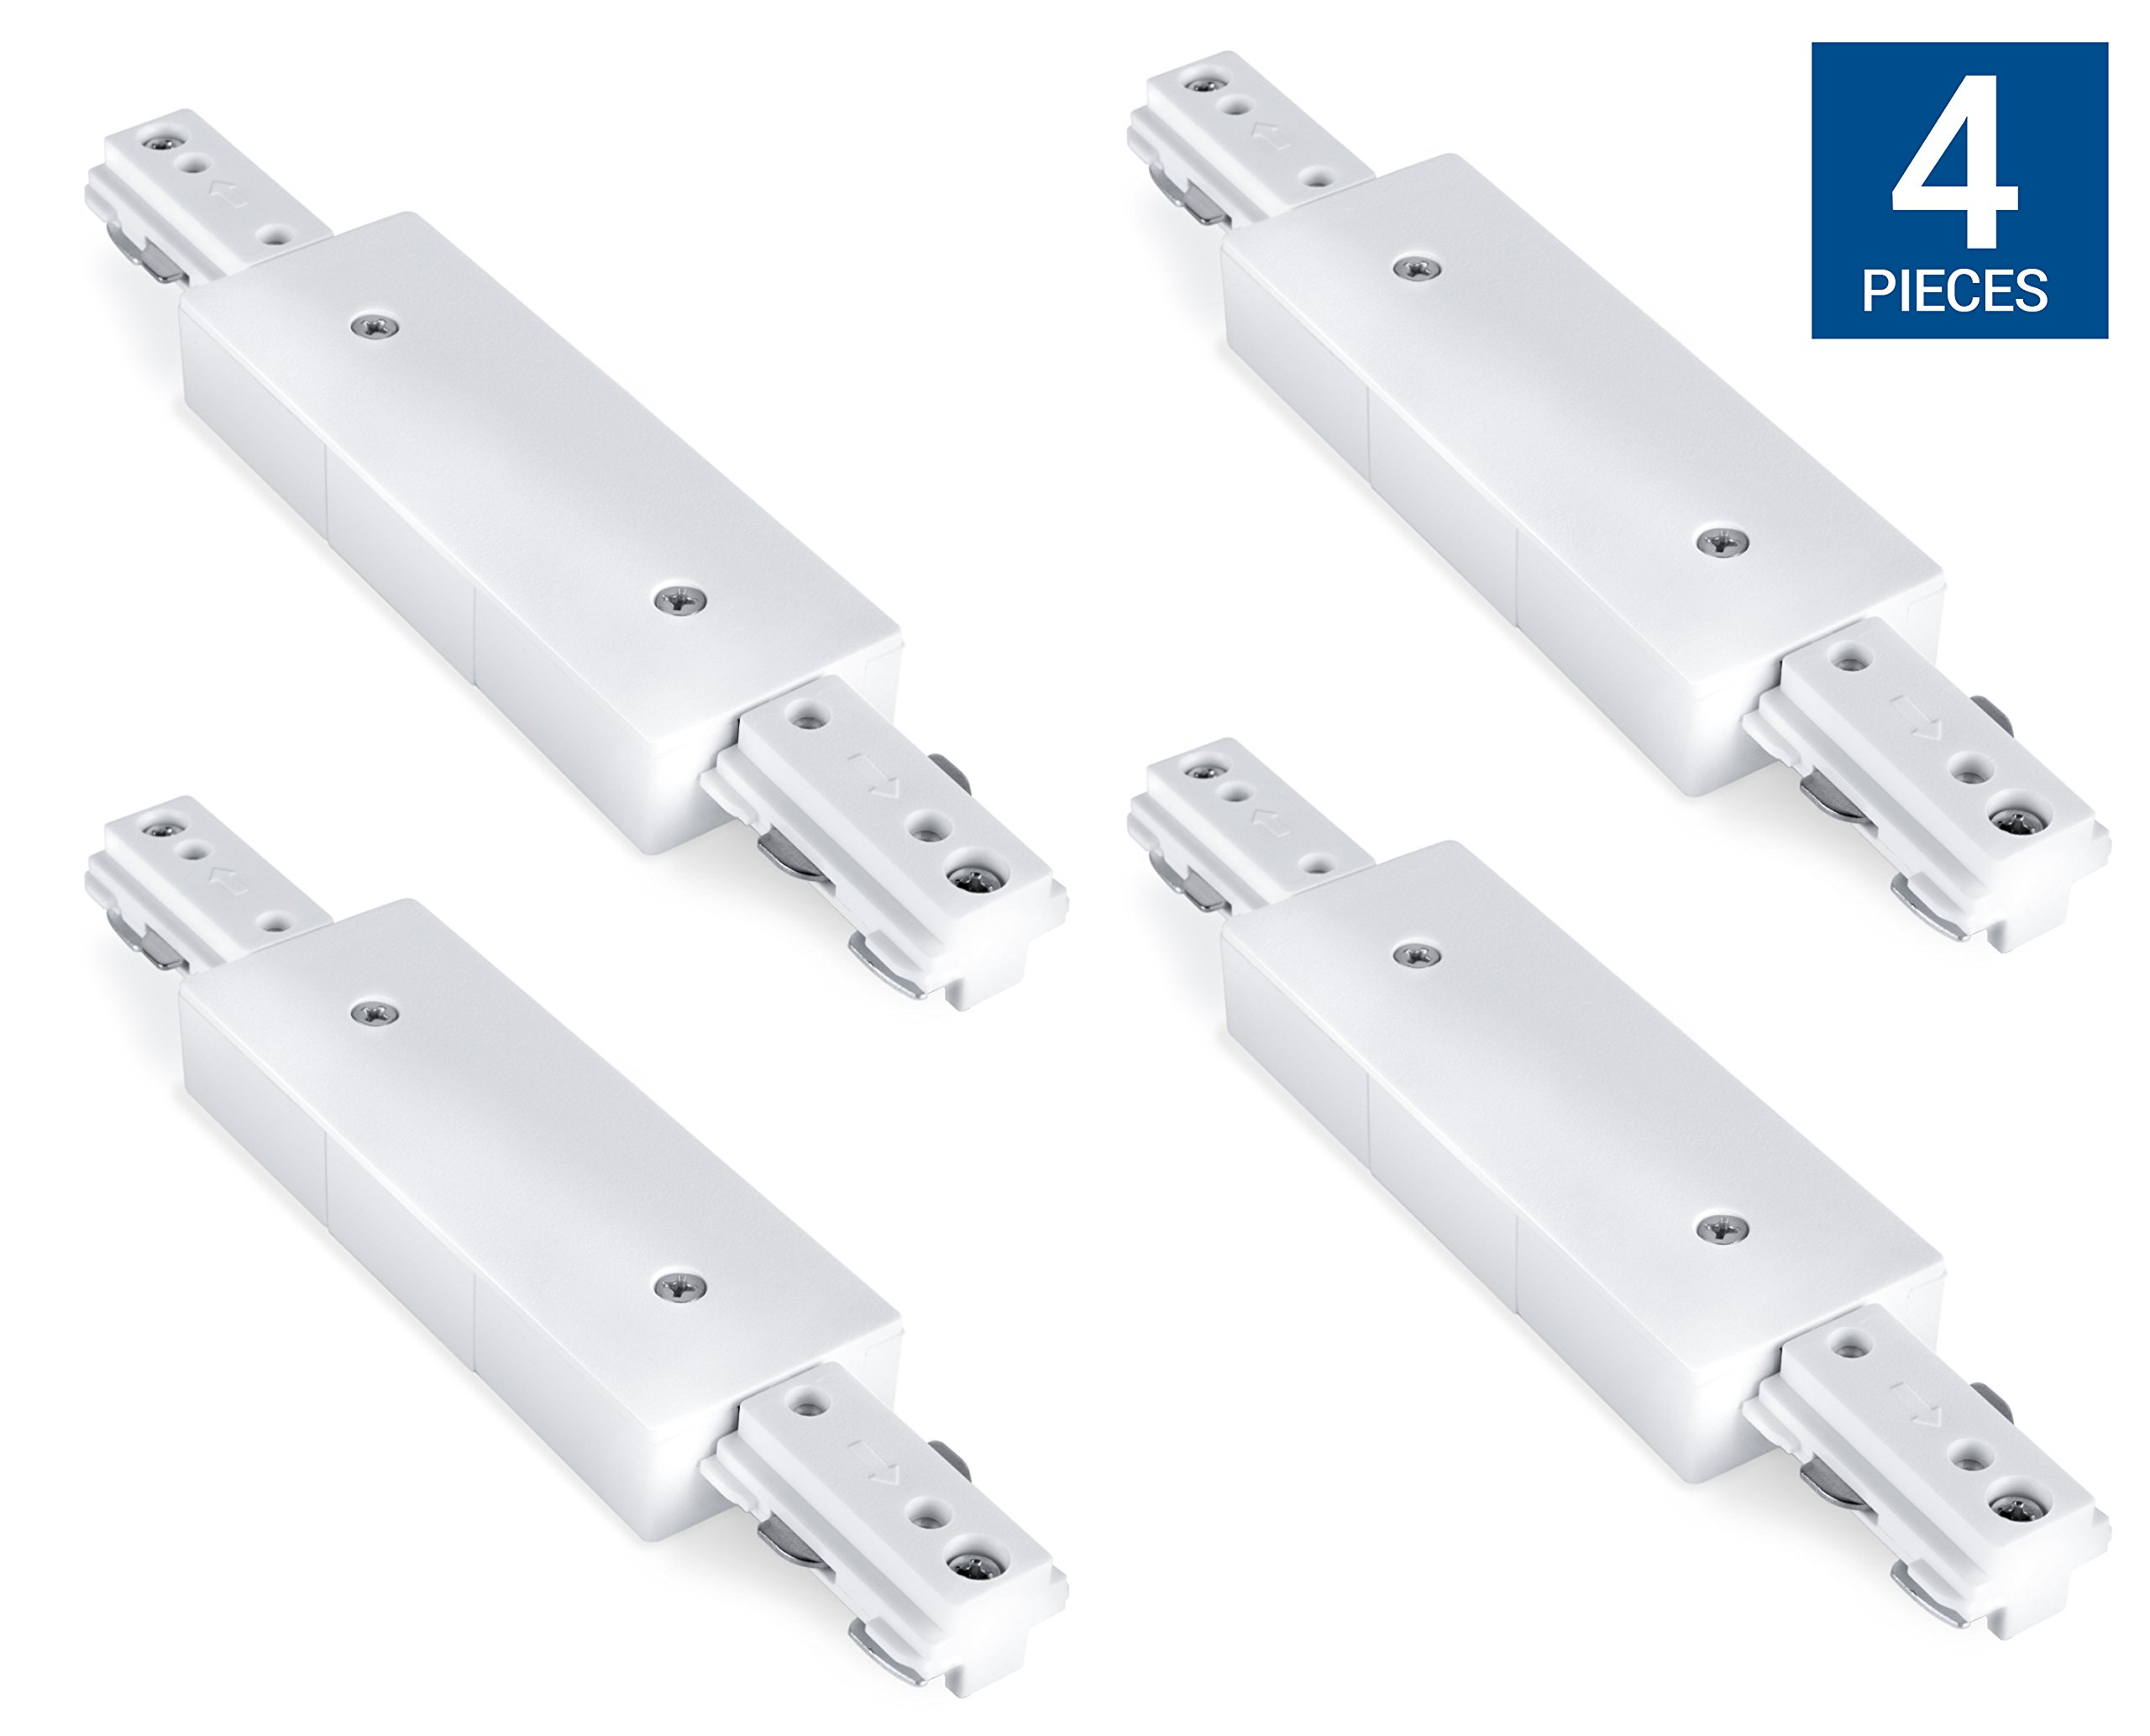 Hyperikon H Track Lighting Connector, I Straight Track Connector, White Single Circuit 3-Wire Track Light Joiner (Pack of 4)